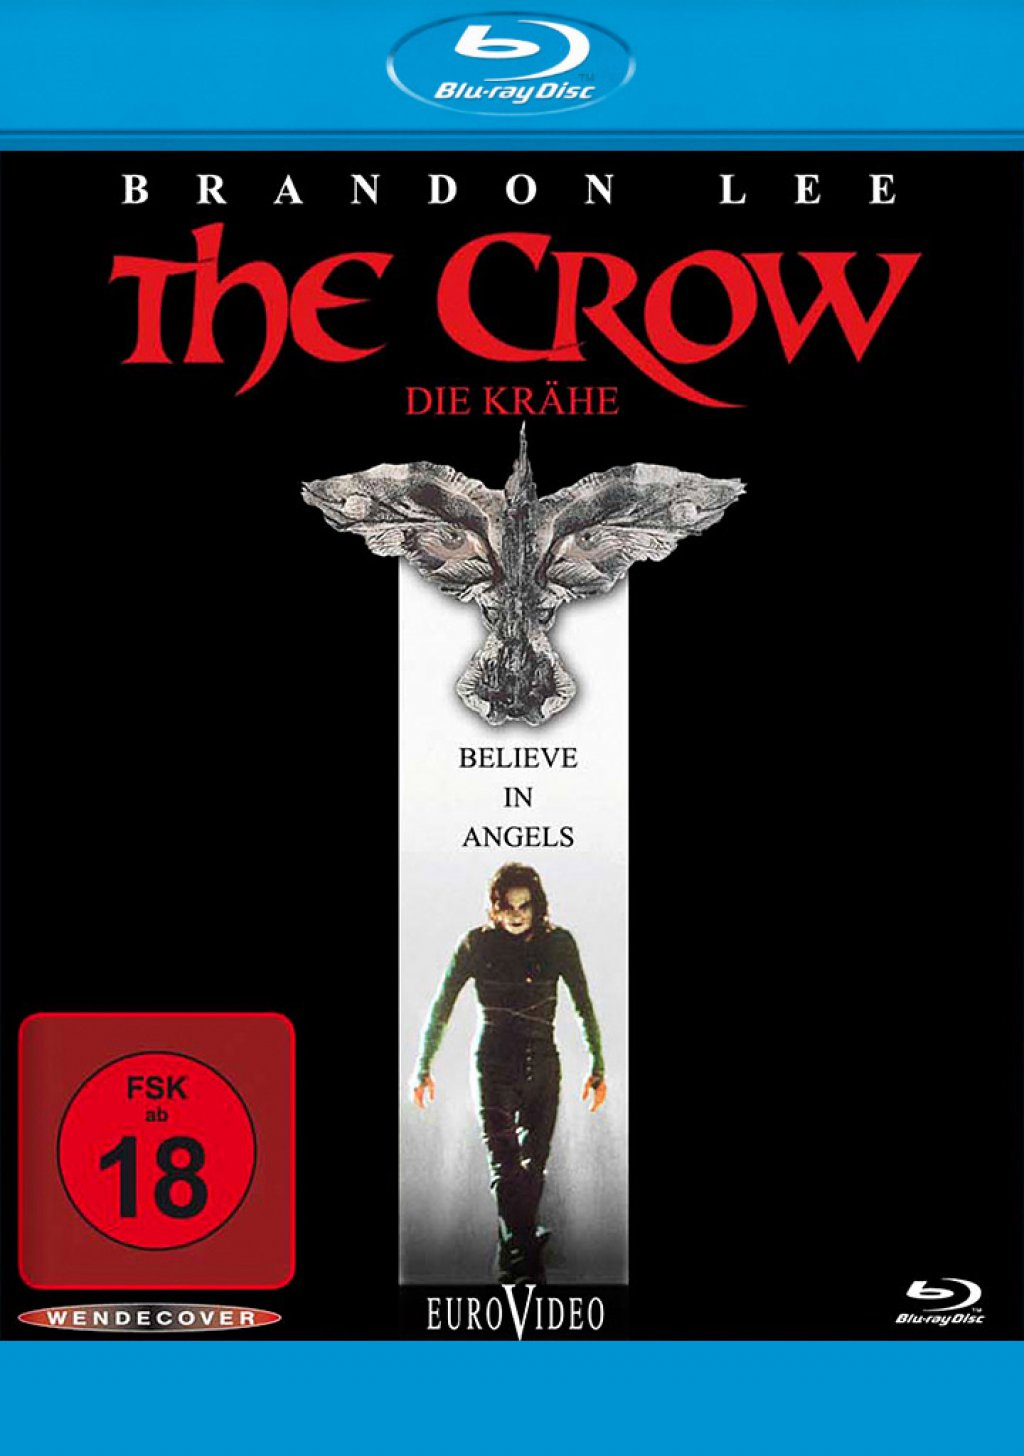 The Crow - Die Krähe - 2. Auflage (Blu-ray)